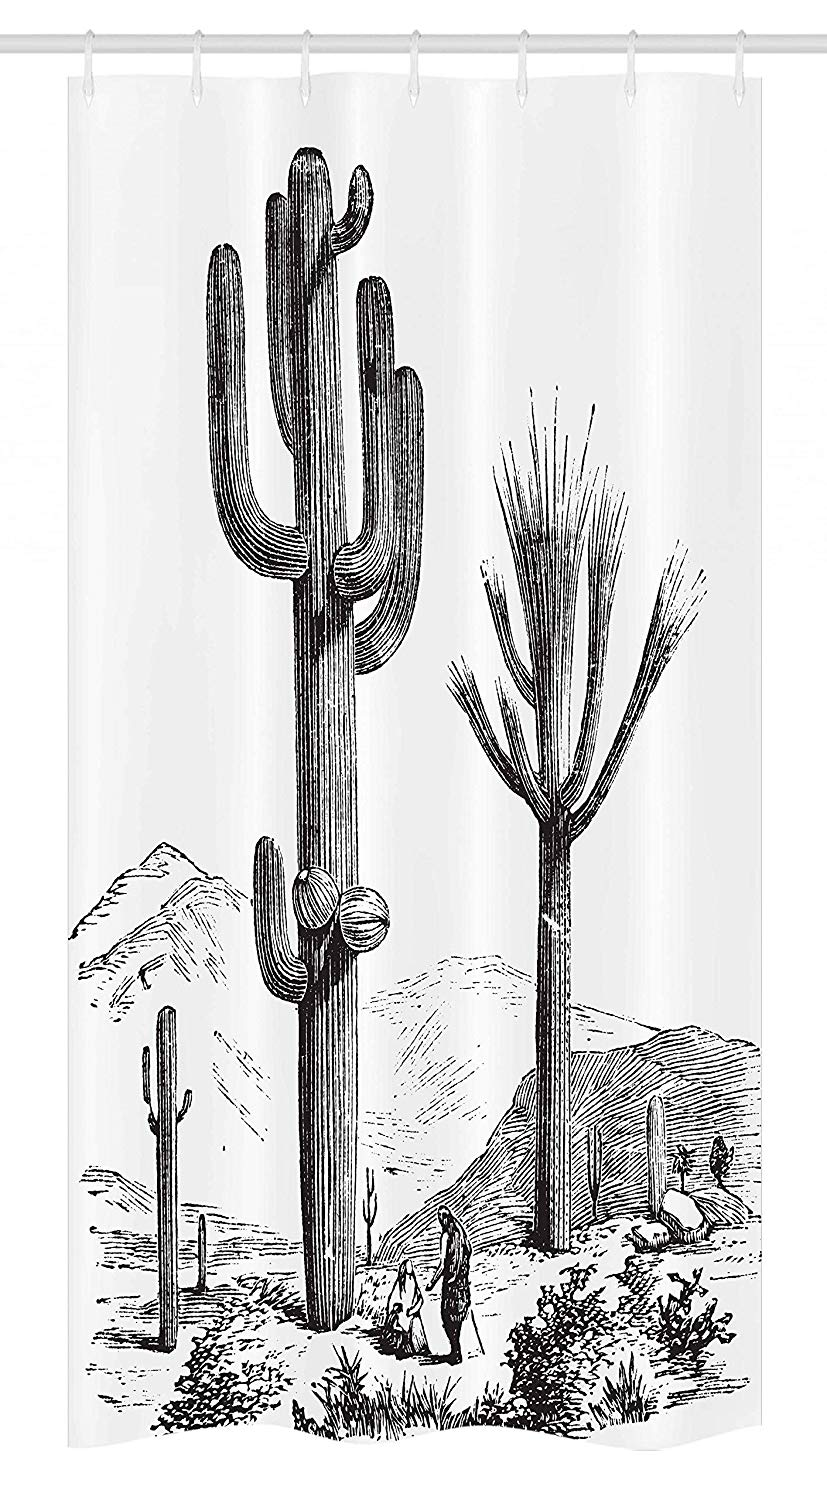 Ambesonne Cactus Stall Shower Curtain, Sketchy Hand Drawn Print of Desert Plants with Mexican Travellers Image, Fabric Bathroom Decor Set with Hooks, 36